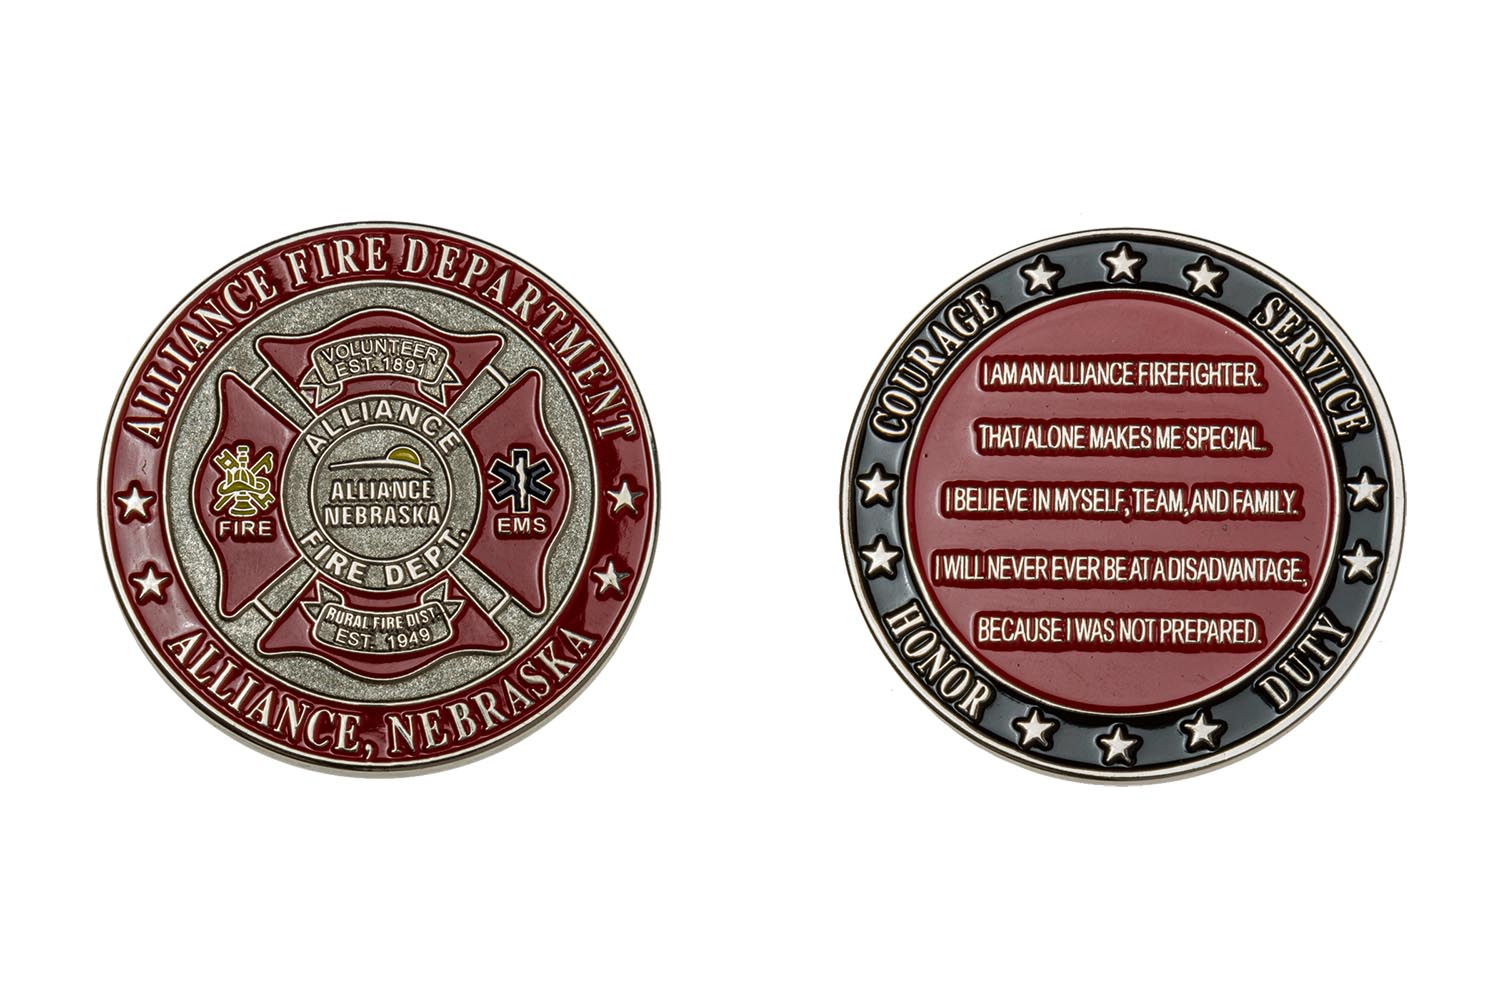 Metal fire department coin